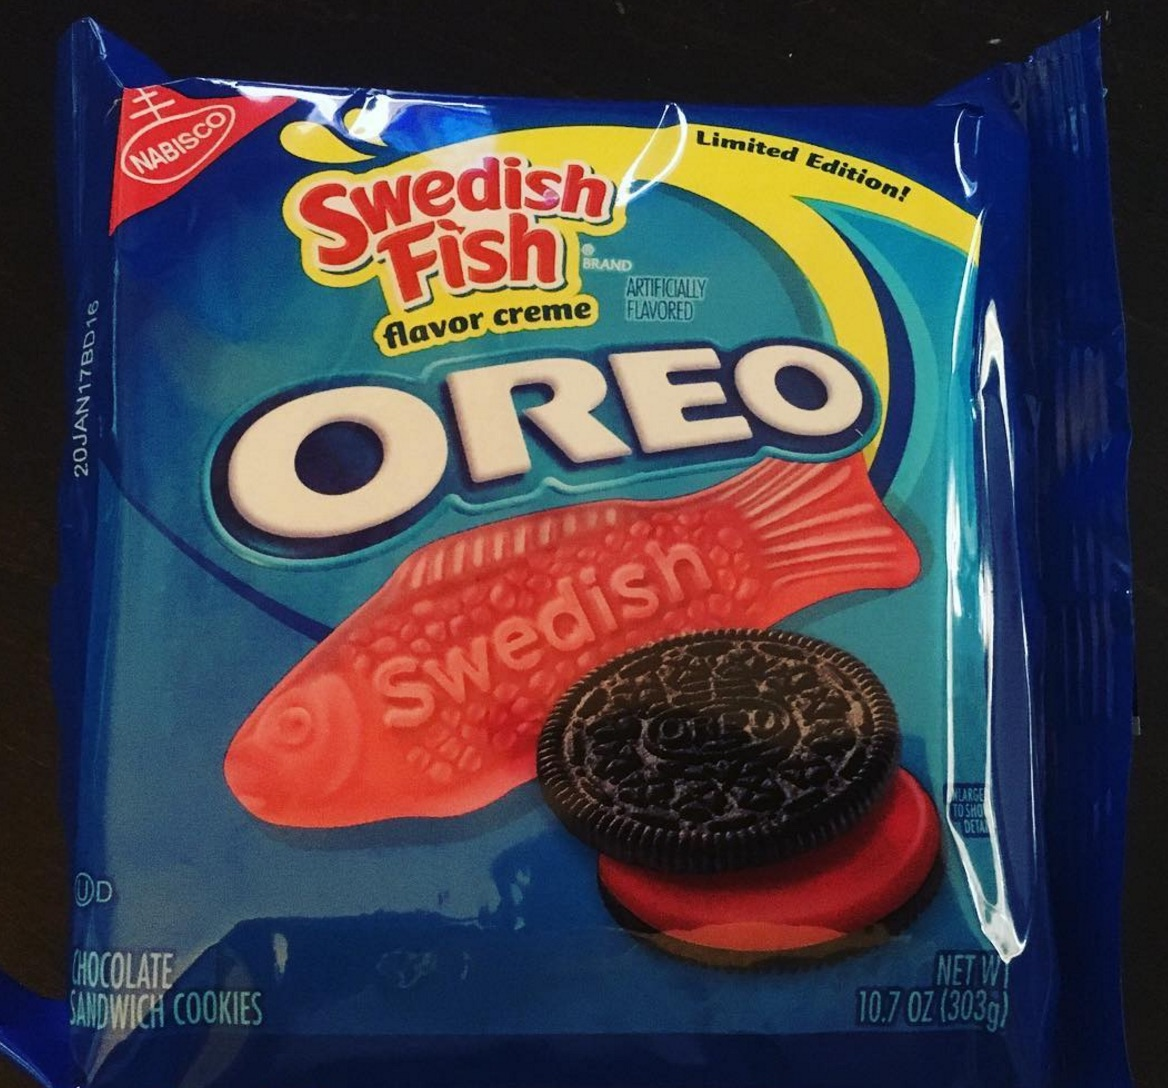 There's a new Oreo flavor and we *think* it sounds delicious